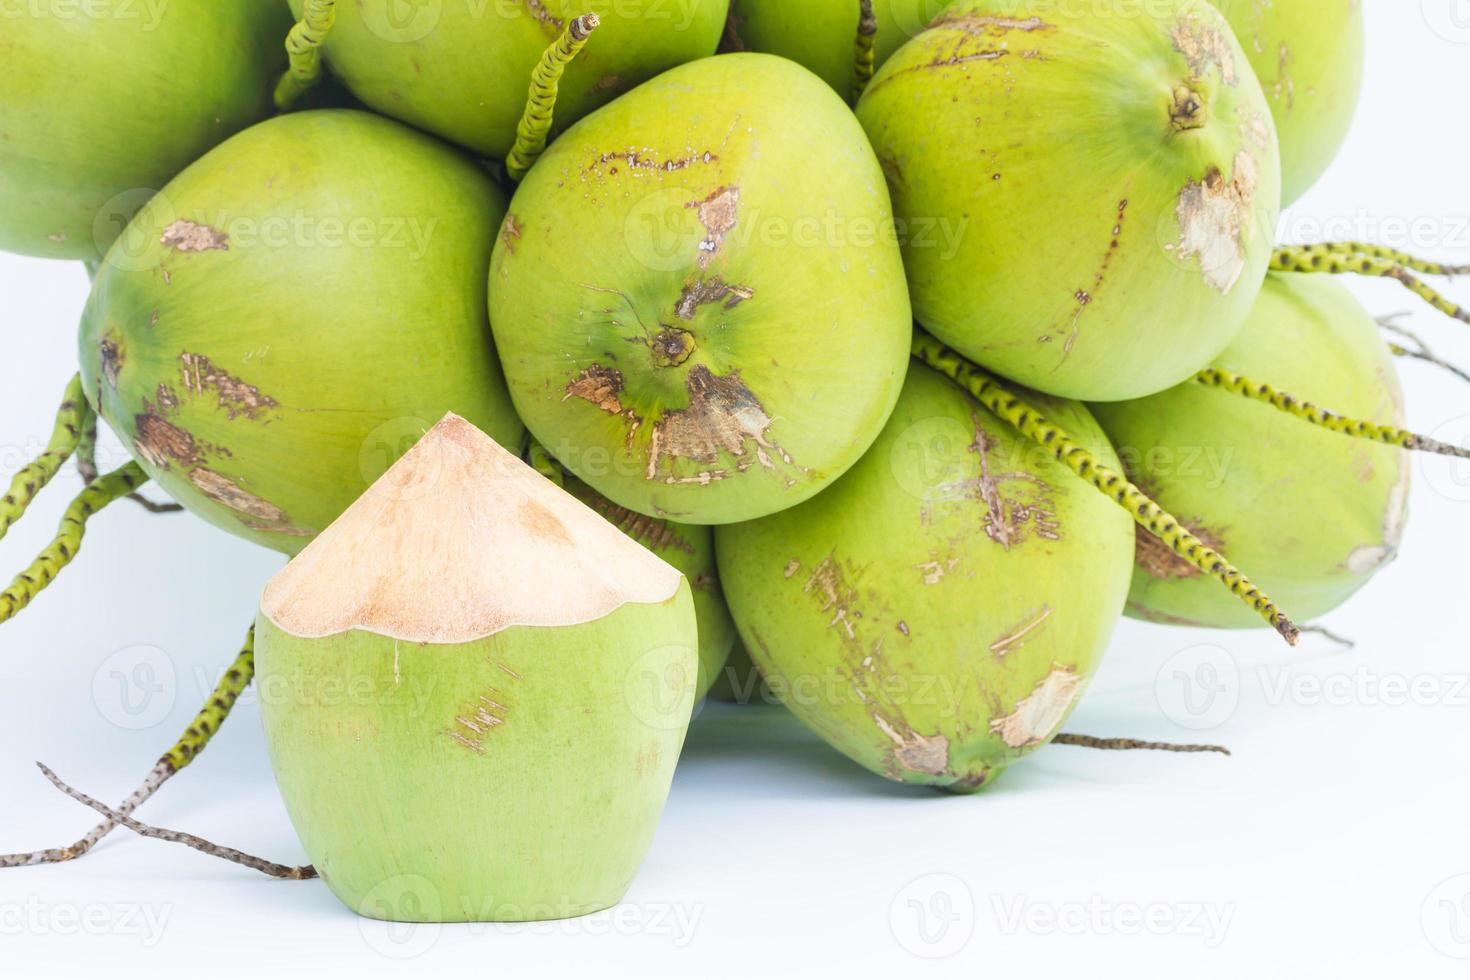 Coconut fruits for water drinking photo